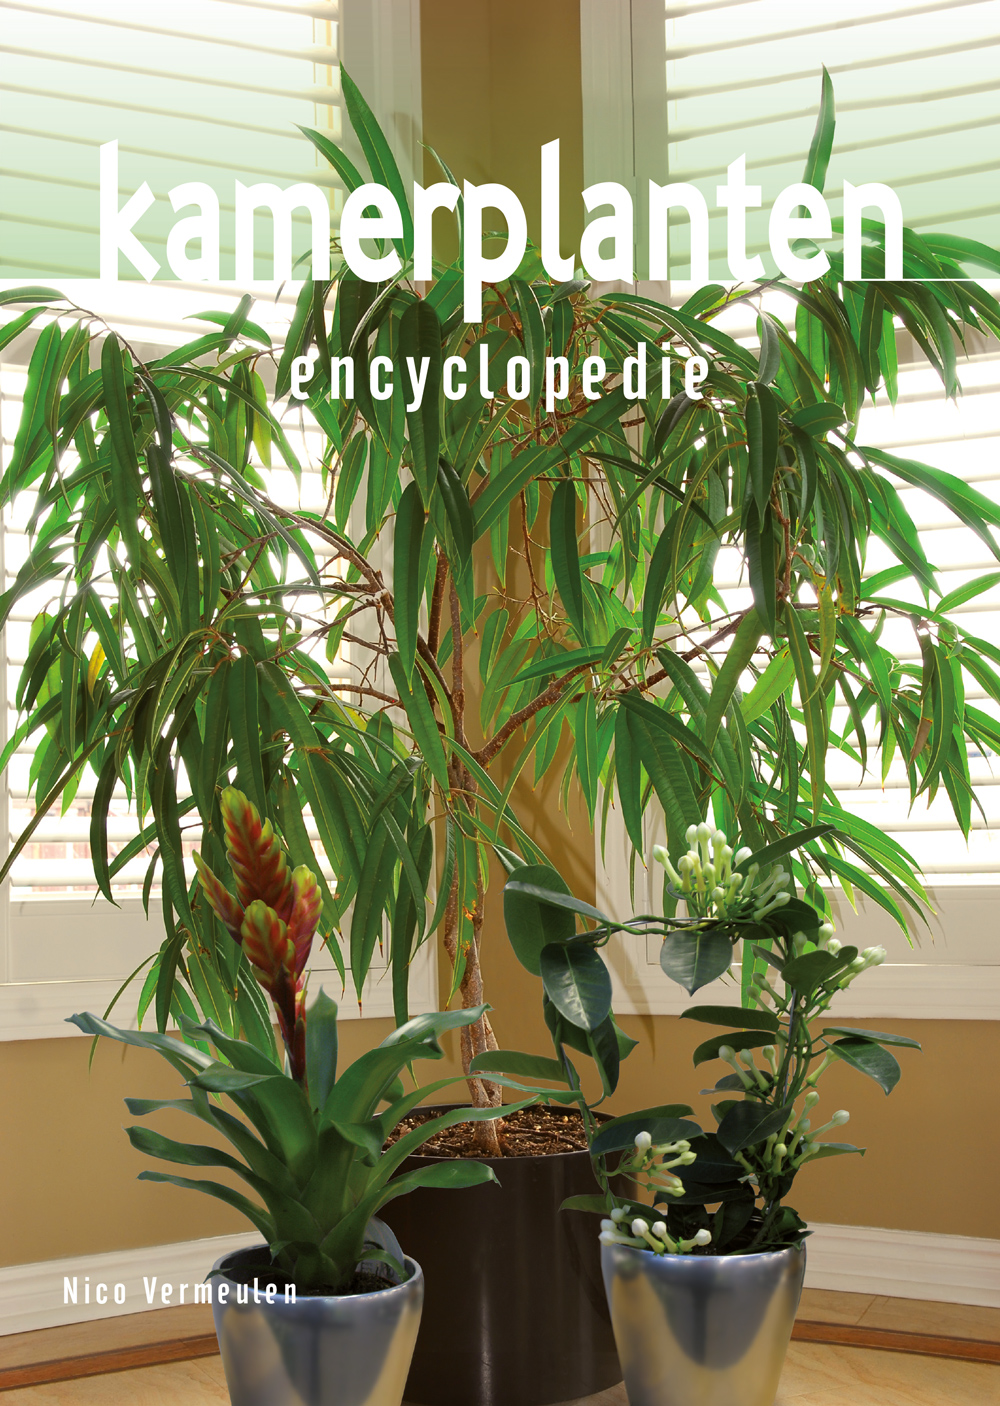 Kamerplanten encyclopedie